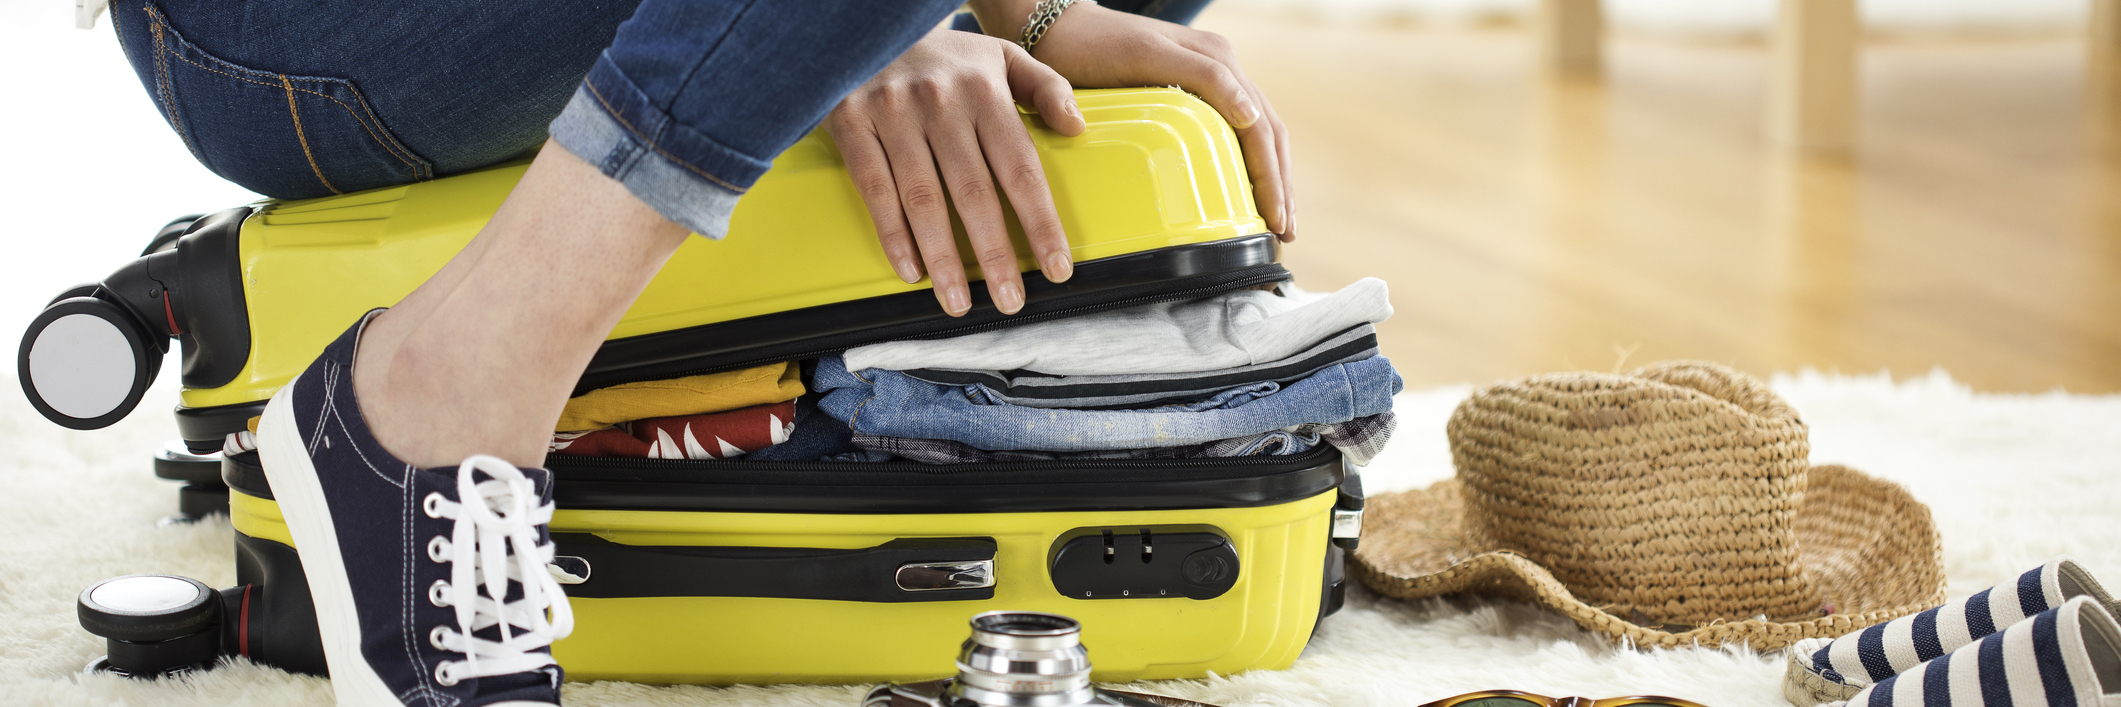 Packing travel suitcase.